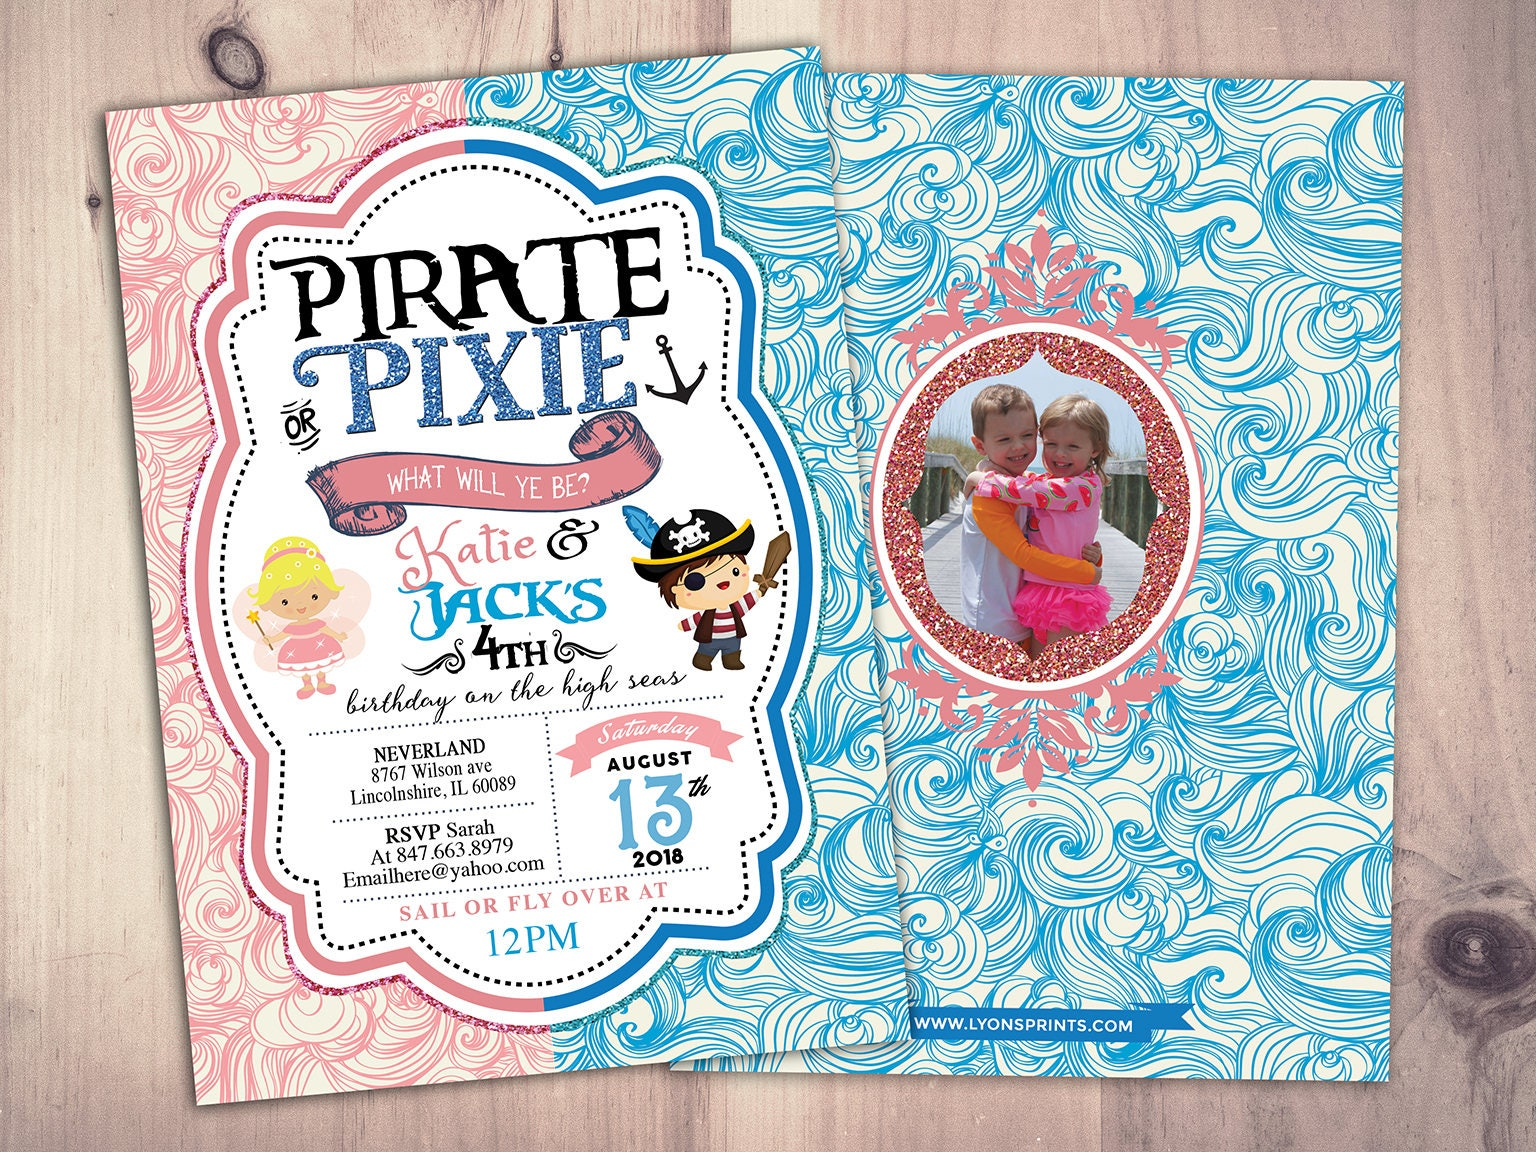 Pirates,Princess, Pixie Party Invitations, Pirate, Princess, Pixie ...